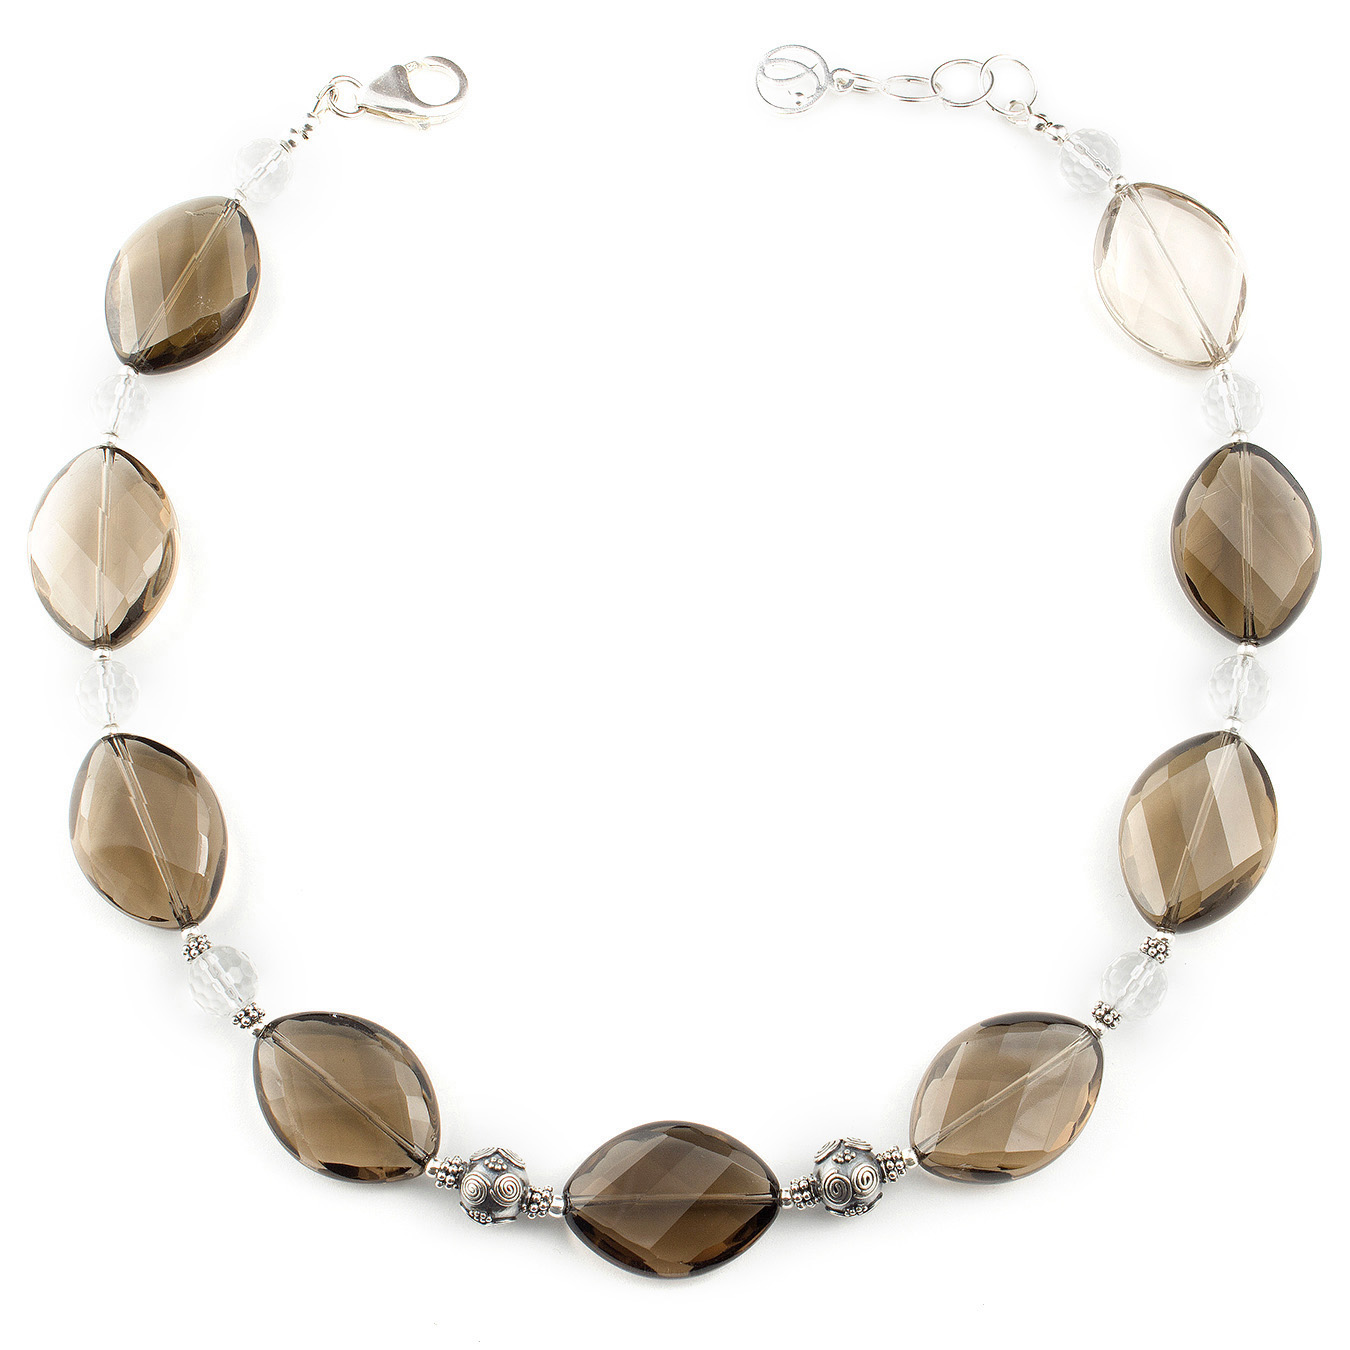 Create your own Bali necklace with citrine, smoky and clear quartz